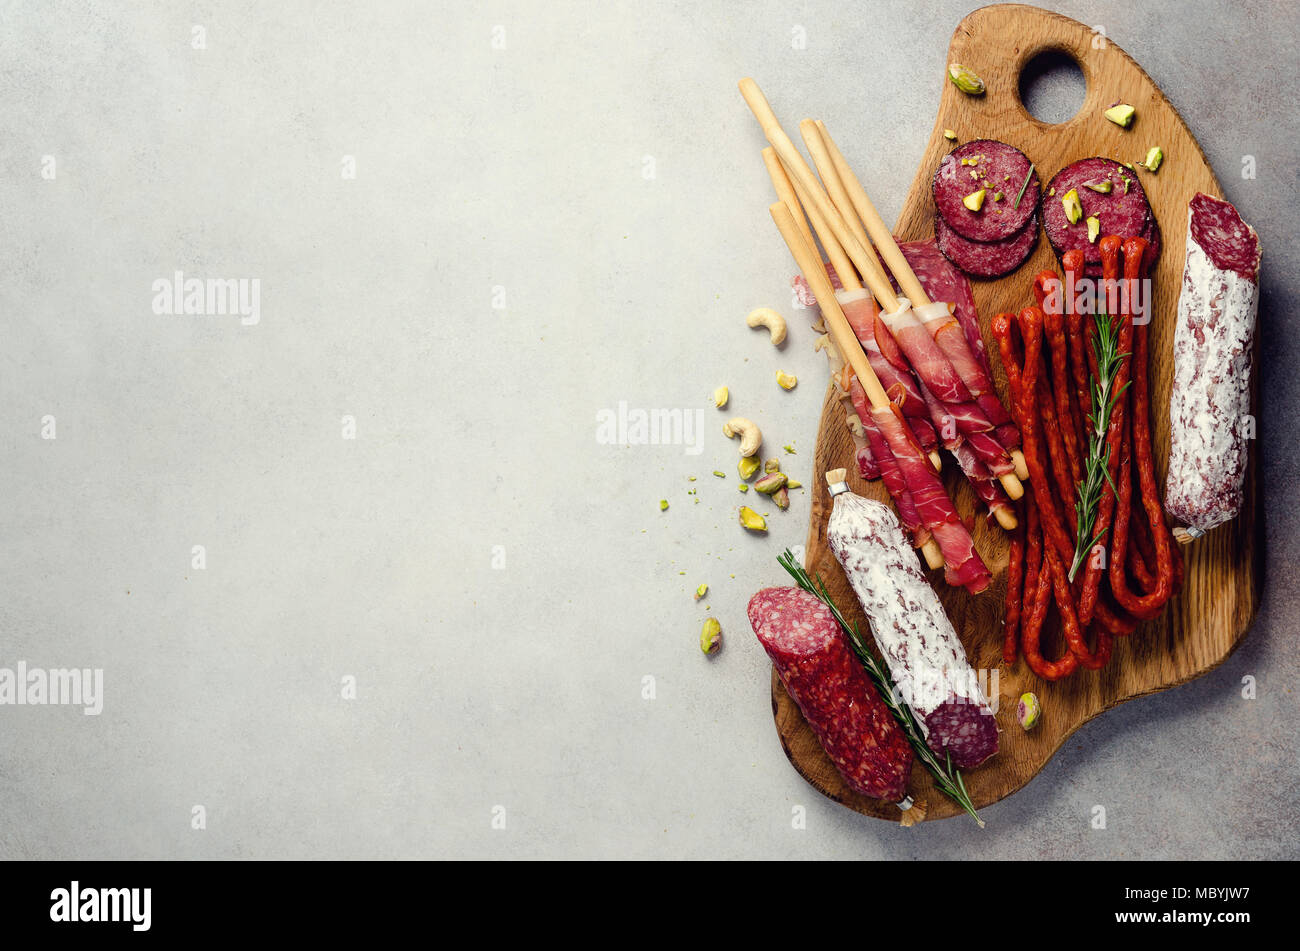 Antipasto plate with meat, olives, grissini bread sticks on grey concrete background. Top view, copy space, flat lay - Stock Image